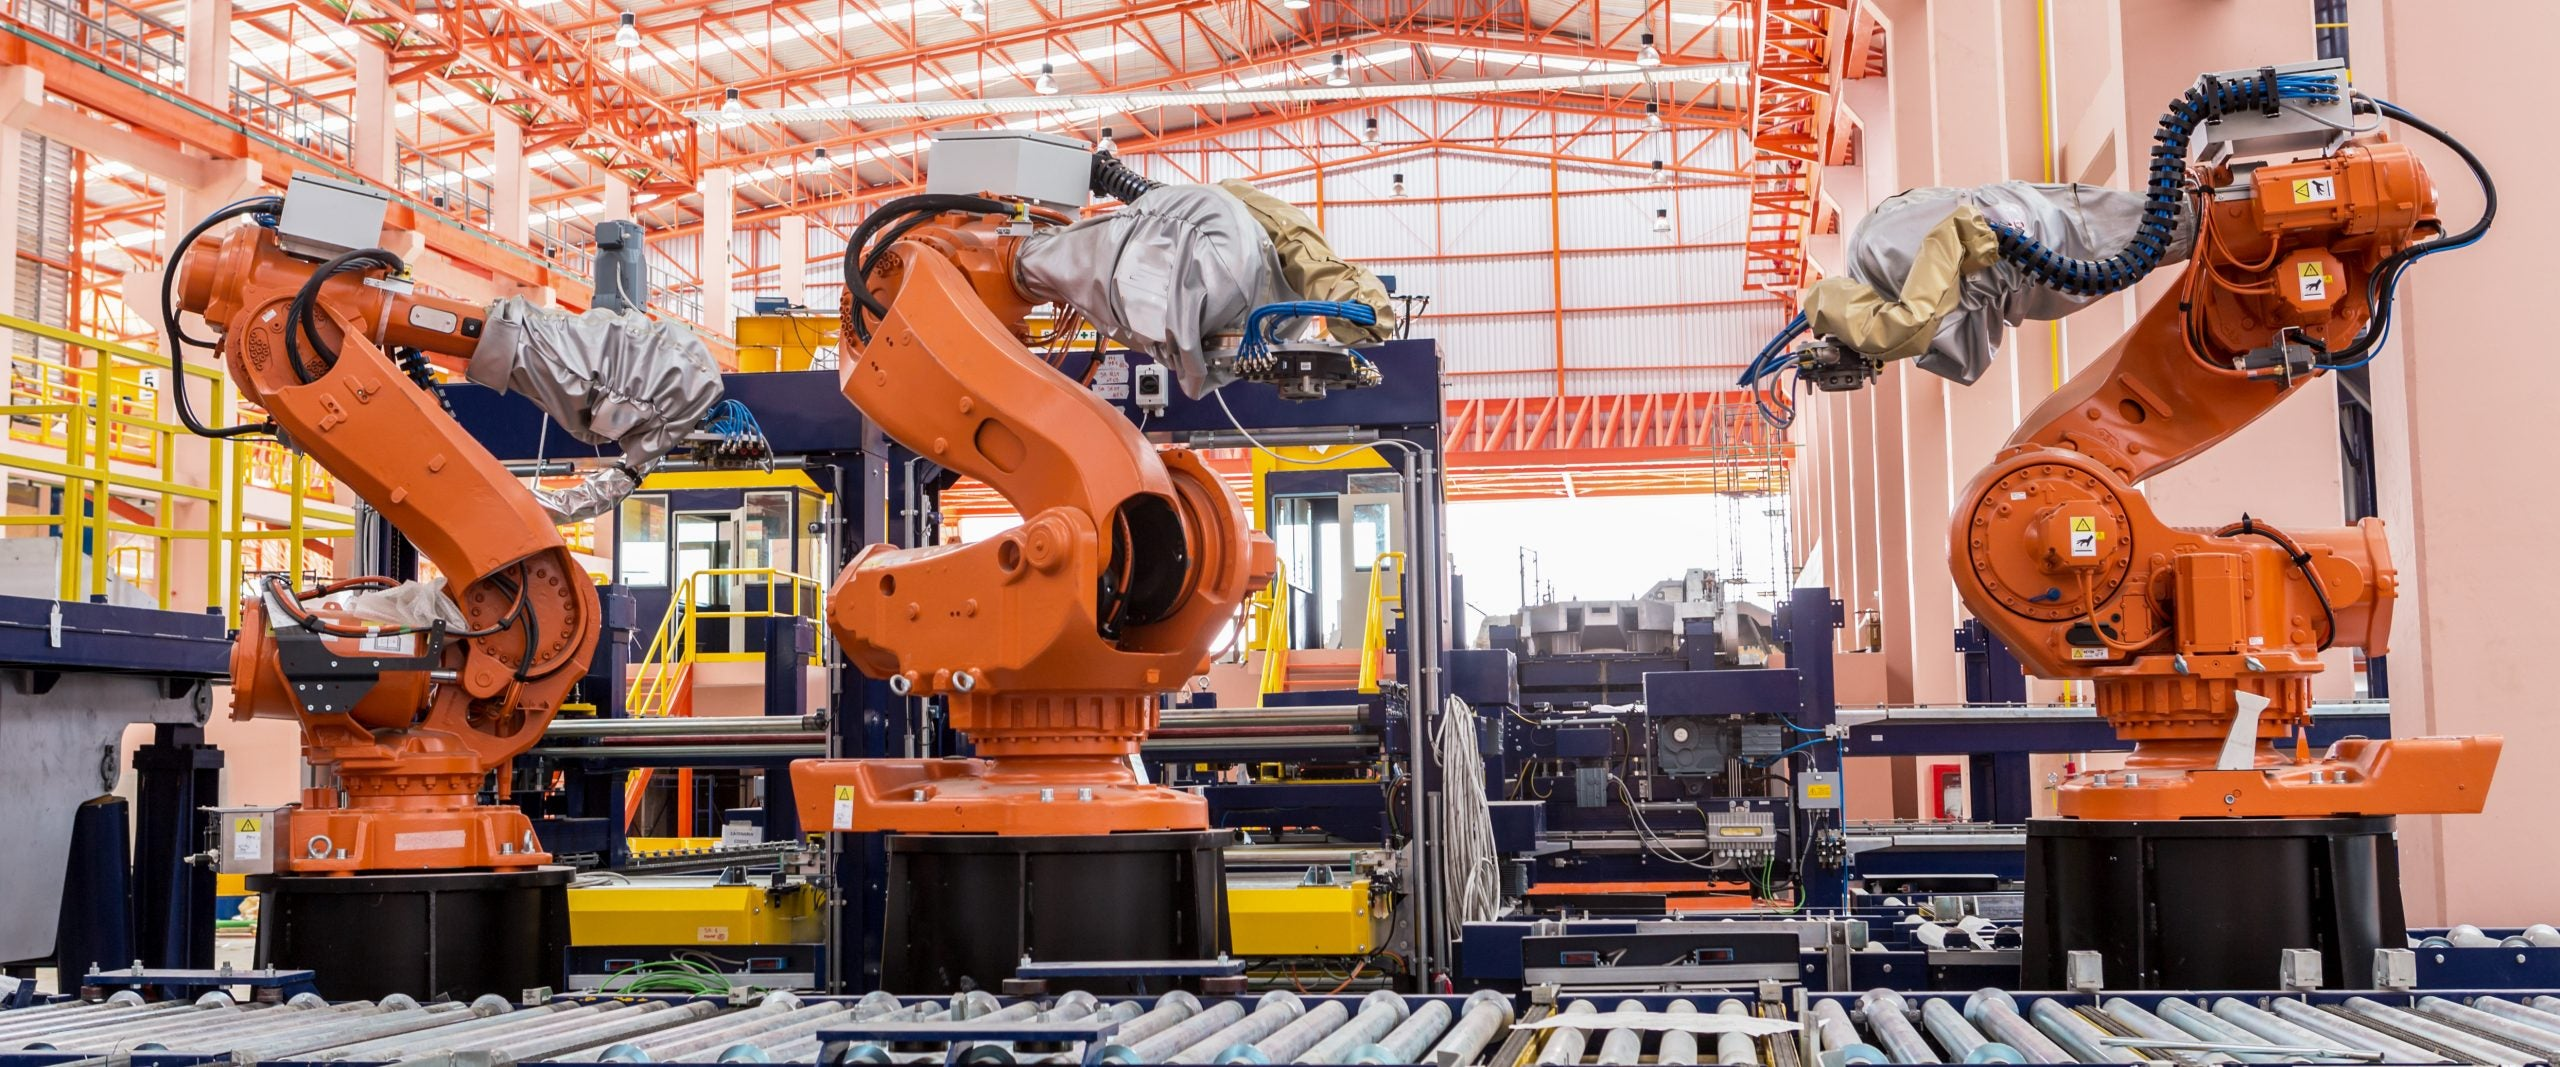 The automation threat